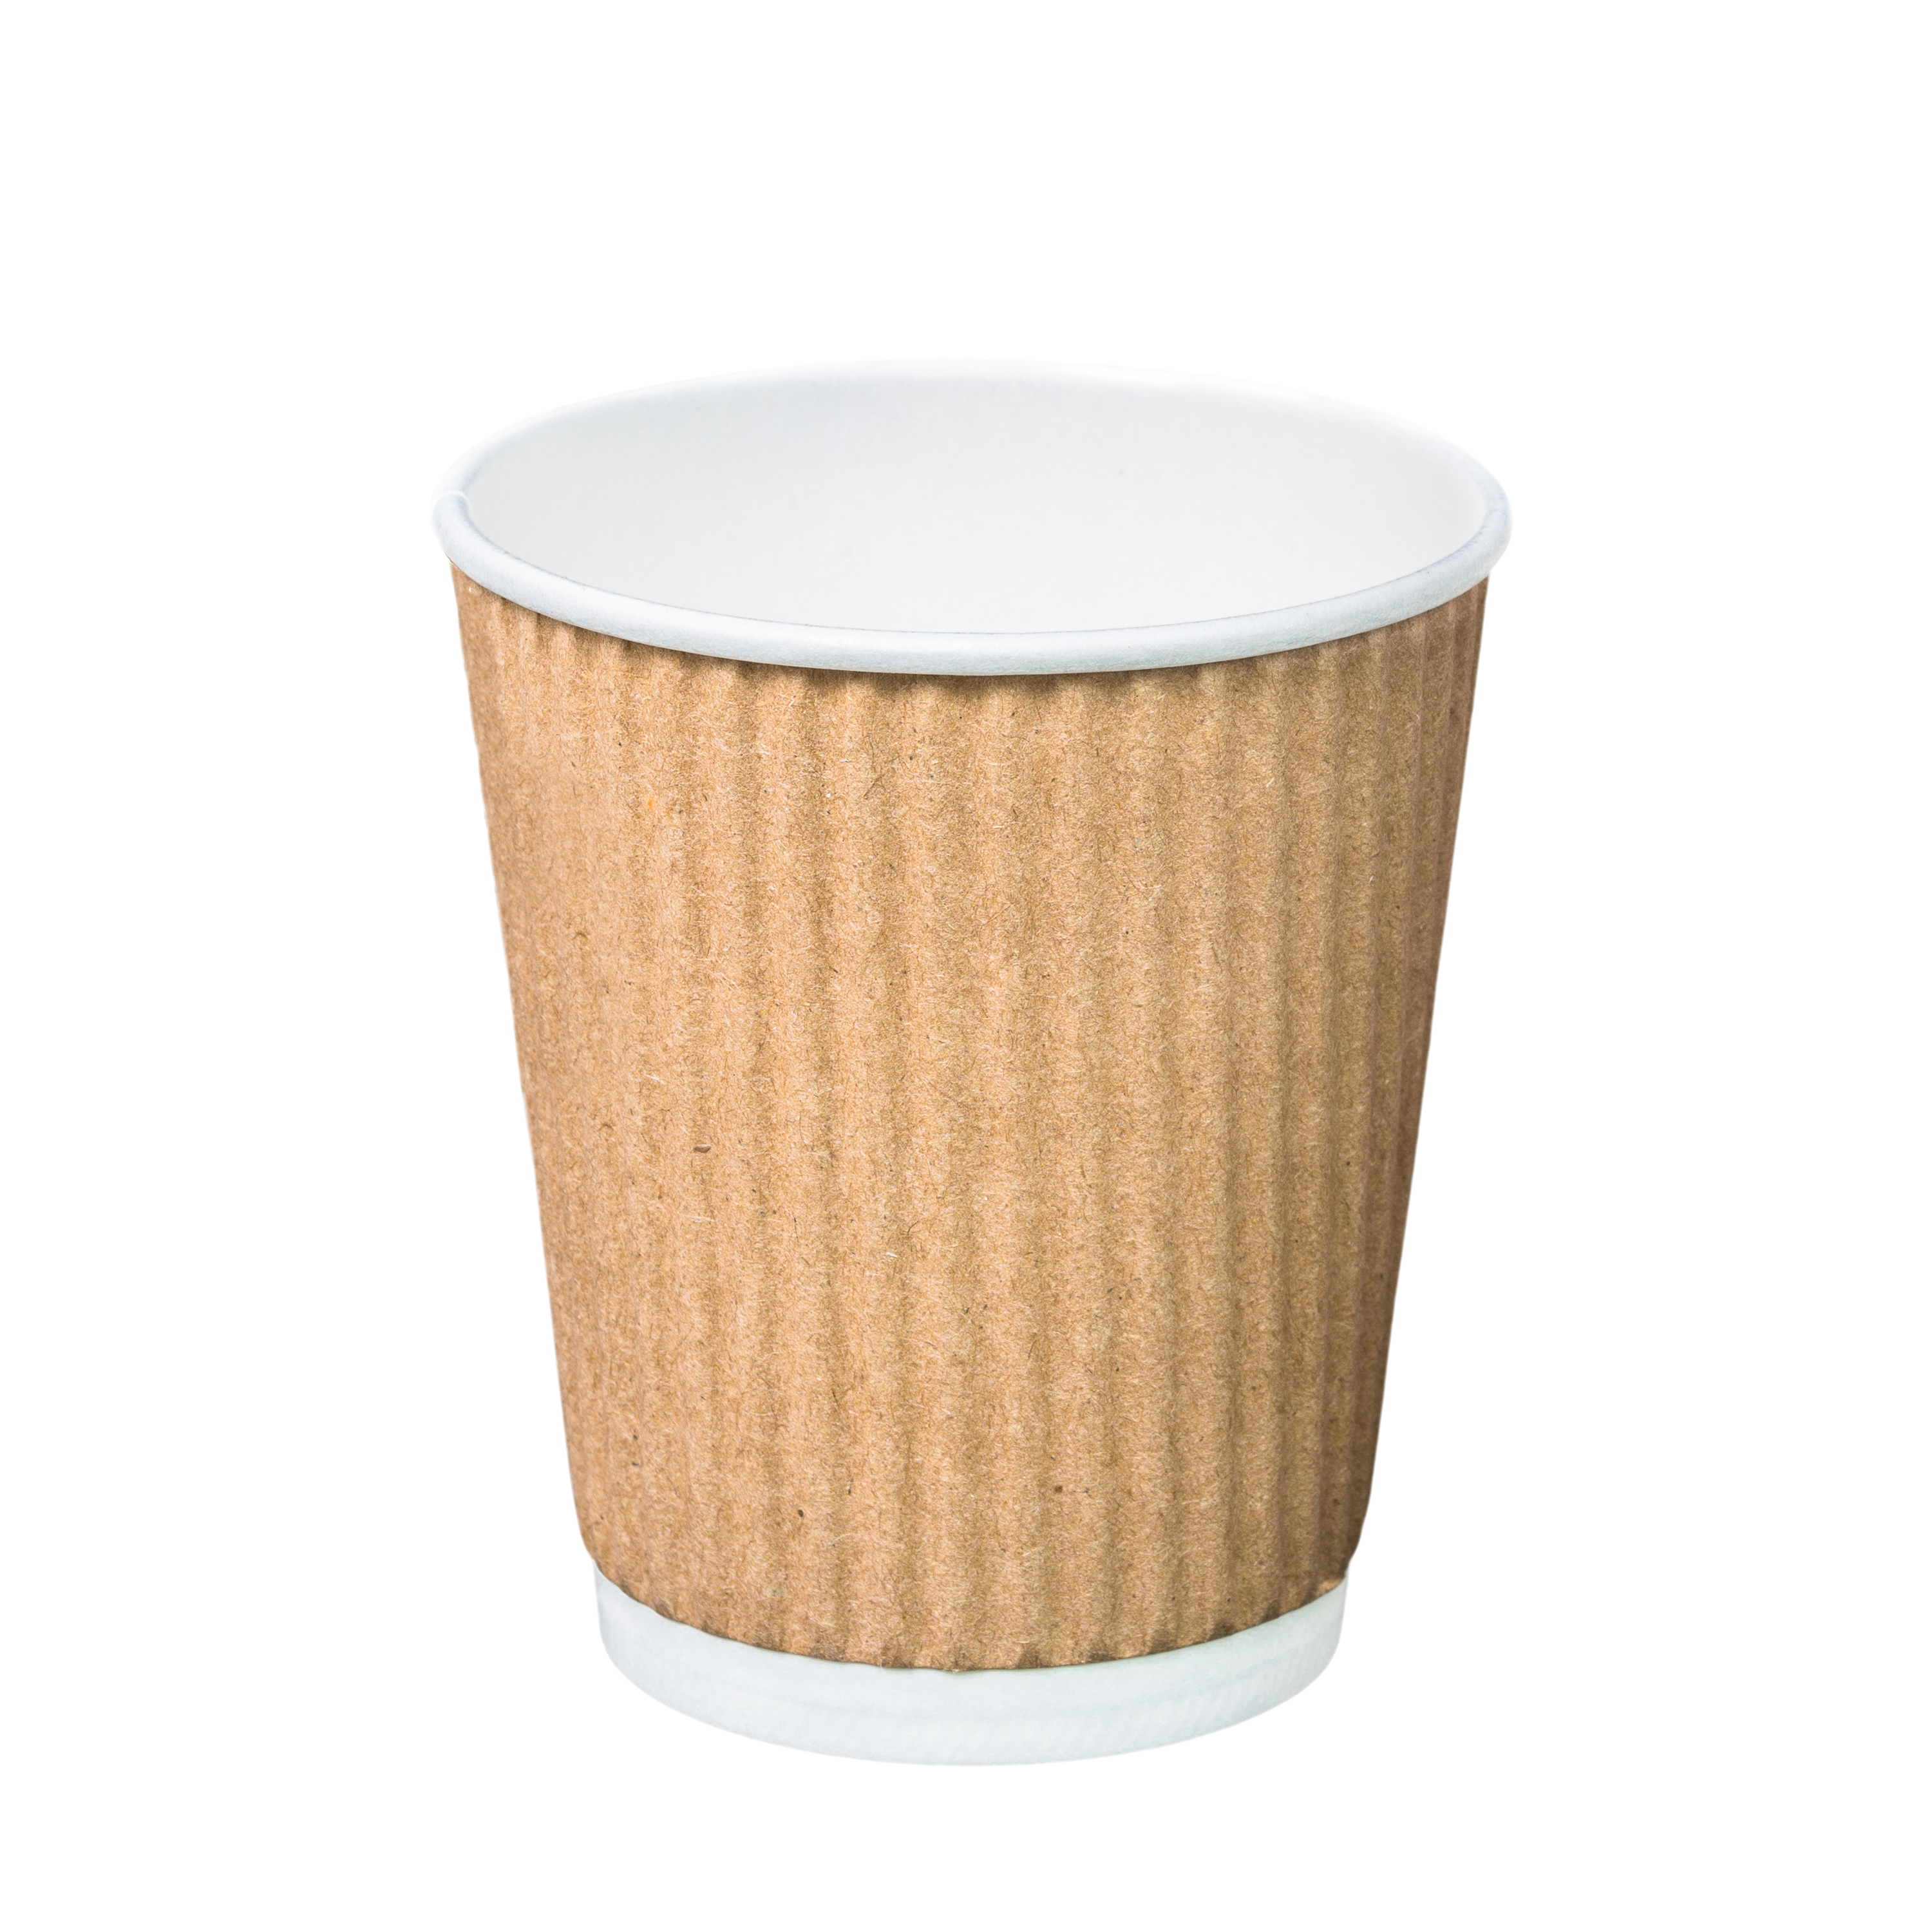 The difficulty of recycling coffee cups